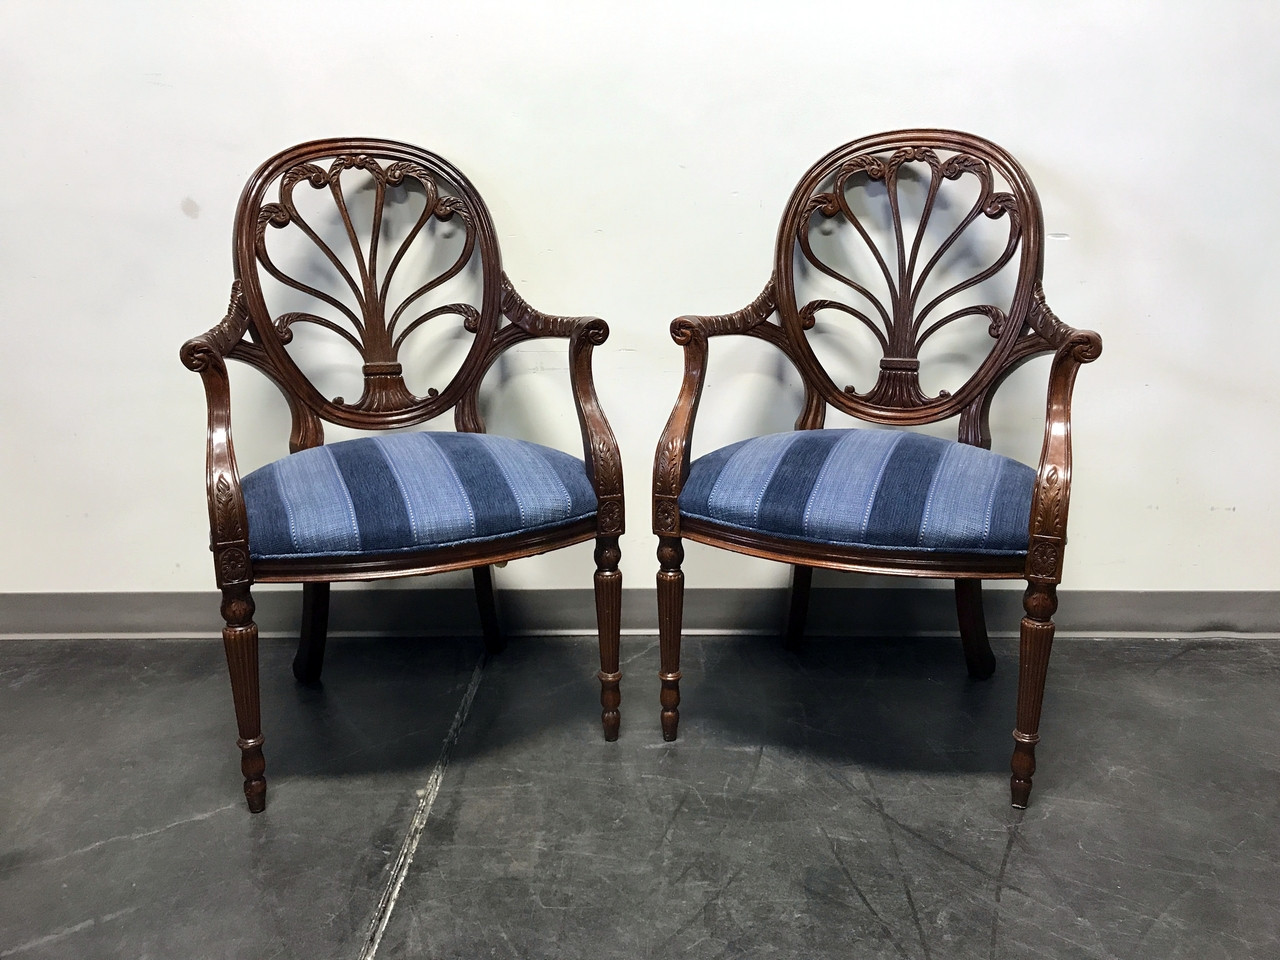 SOLD OUT   HICKORY CHAIR Anthemion Fauteuil Mahogany Arm Chairs   Pair